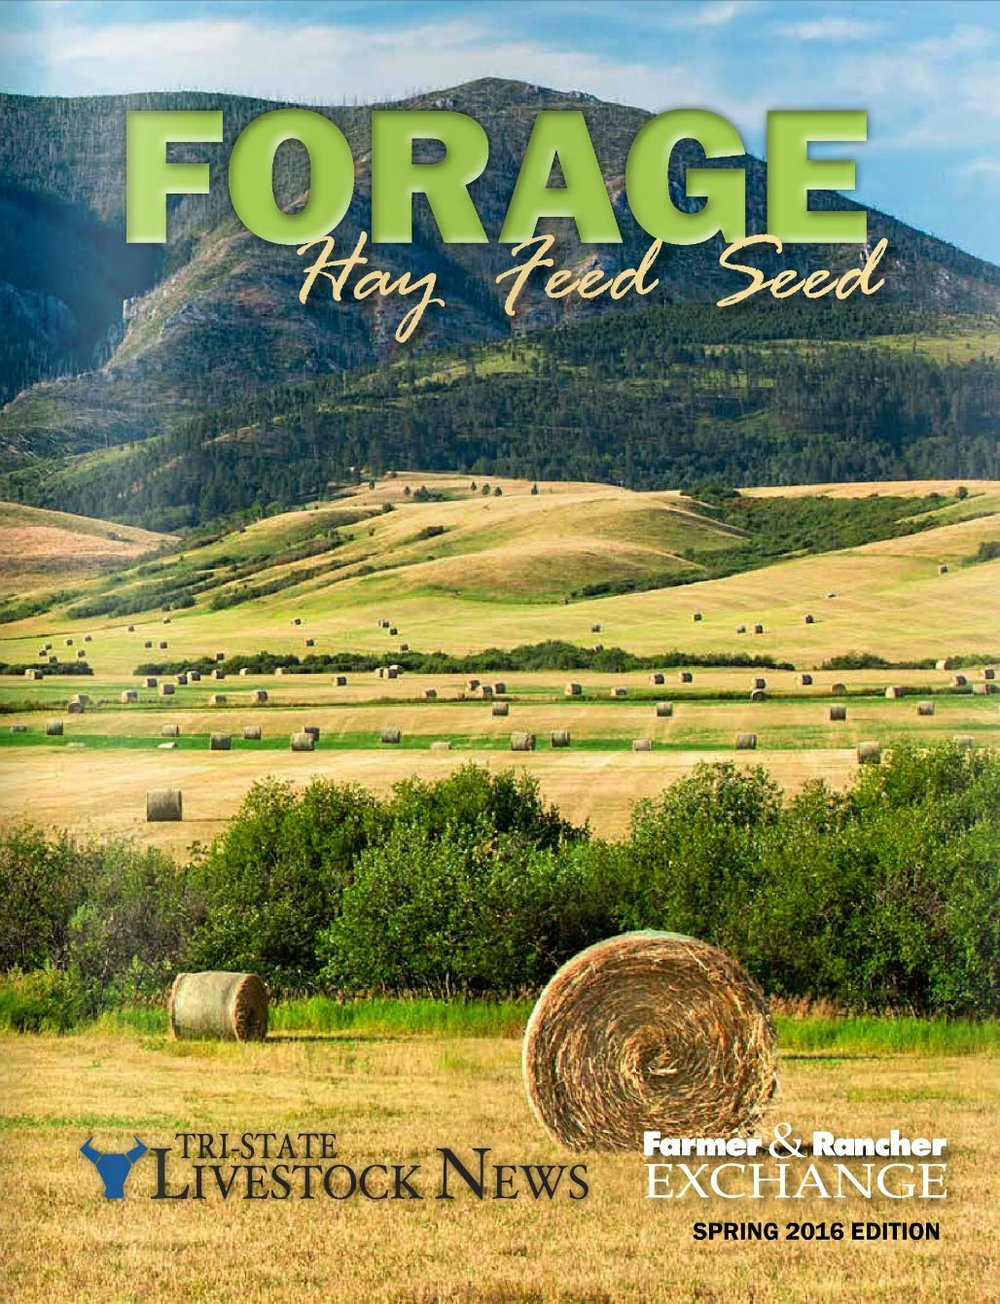 My photo of round bales near the Judith Mountains outside of Lewistown, Montana appears on the cover of the latest issue of Forage Magazine as seen here.